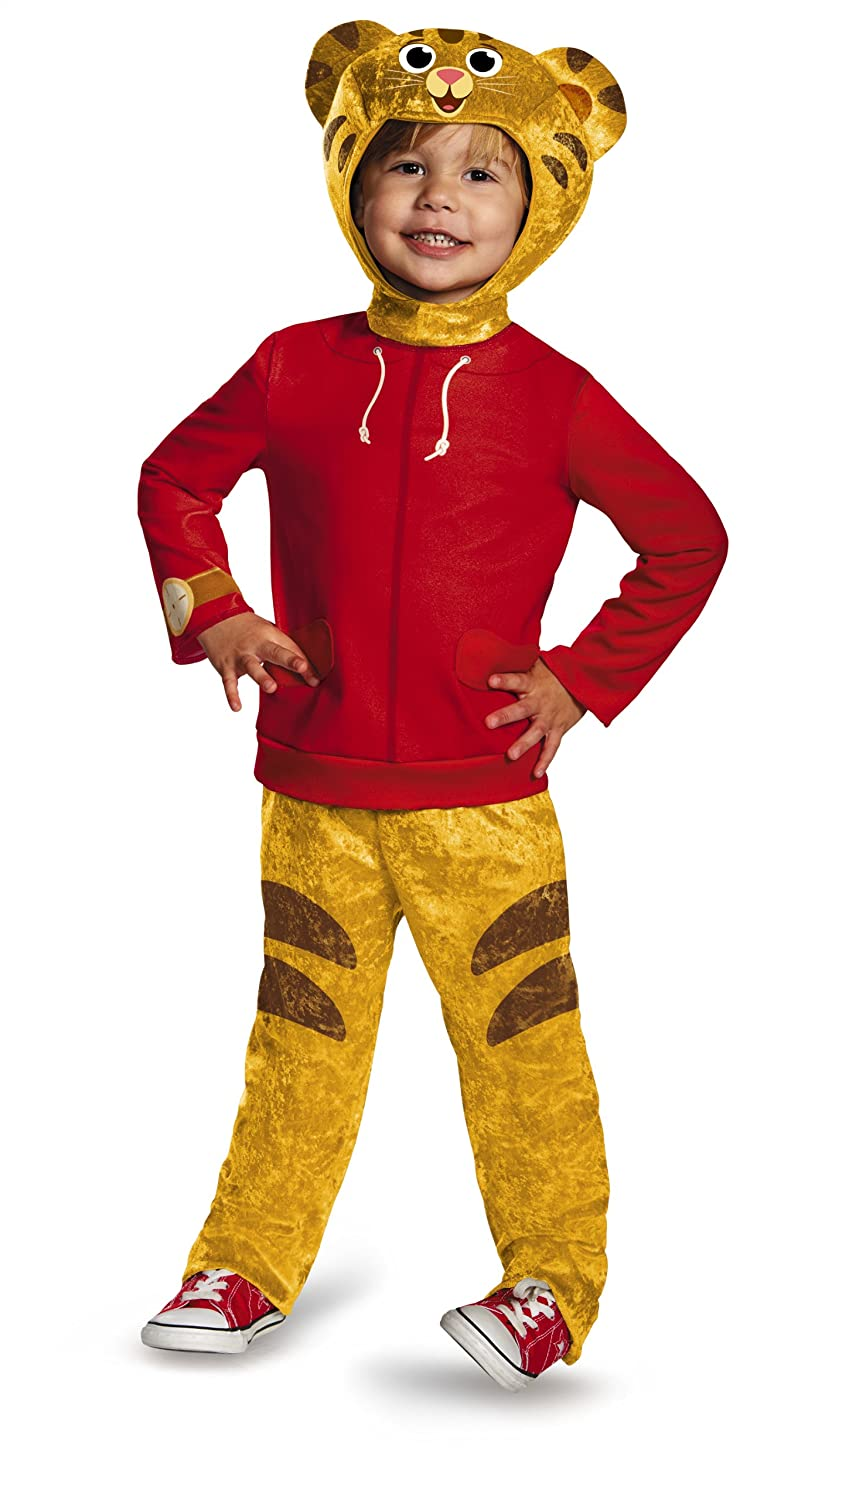 Amazon.com Daniel Tigeru0027s Neighborhood Daniel Tiger Classic Toddler Costume Large/4-6 Toys u0026 Games  sc 1 st  Amazon.com & Amazon.com: Daniel Tigeru0027s Neighborhood Daniel Tiger Classic Toddler ...